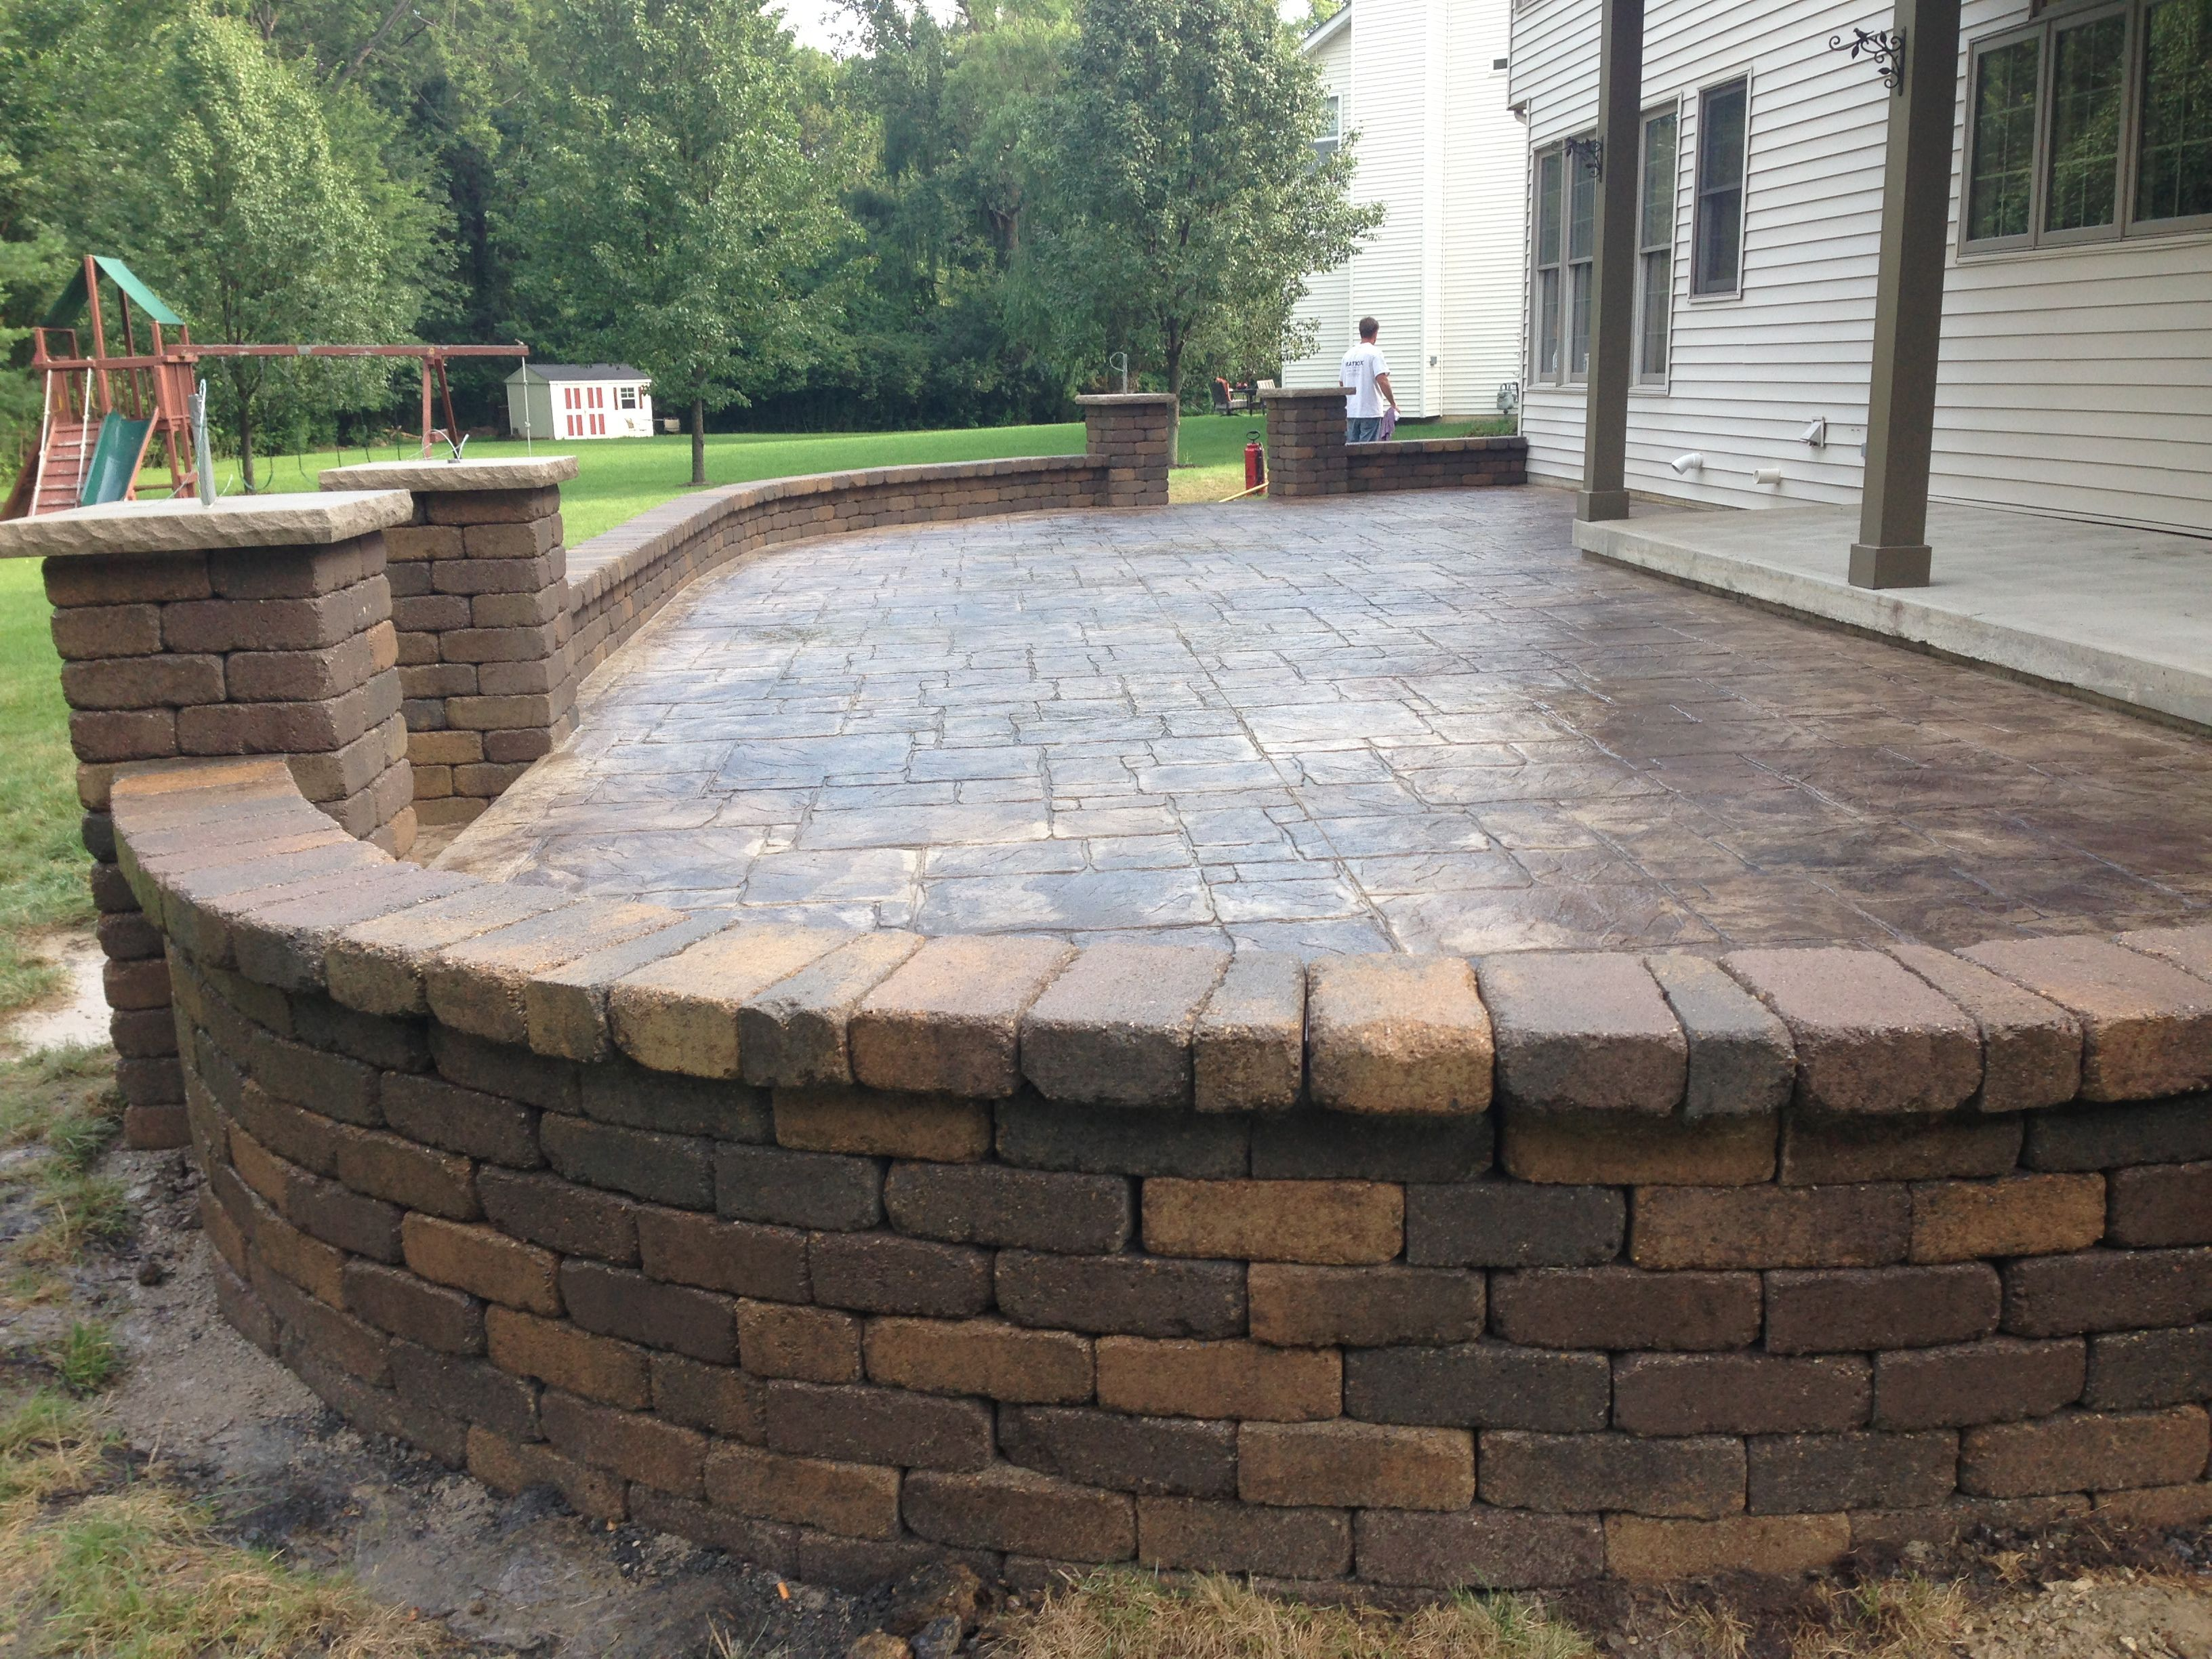 Decorative Stamped Concrete Patio With Retaining Wall And Pillars.  Www.fordsonconcrete.com